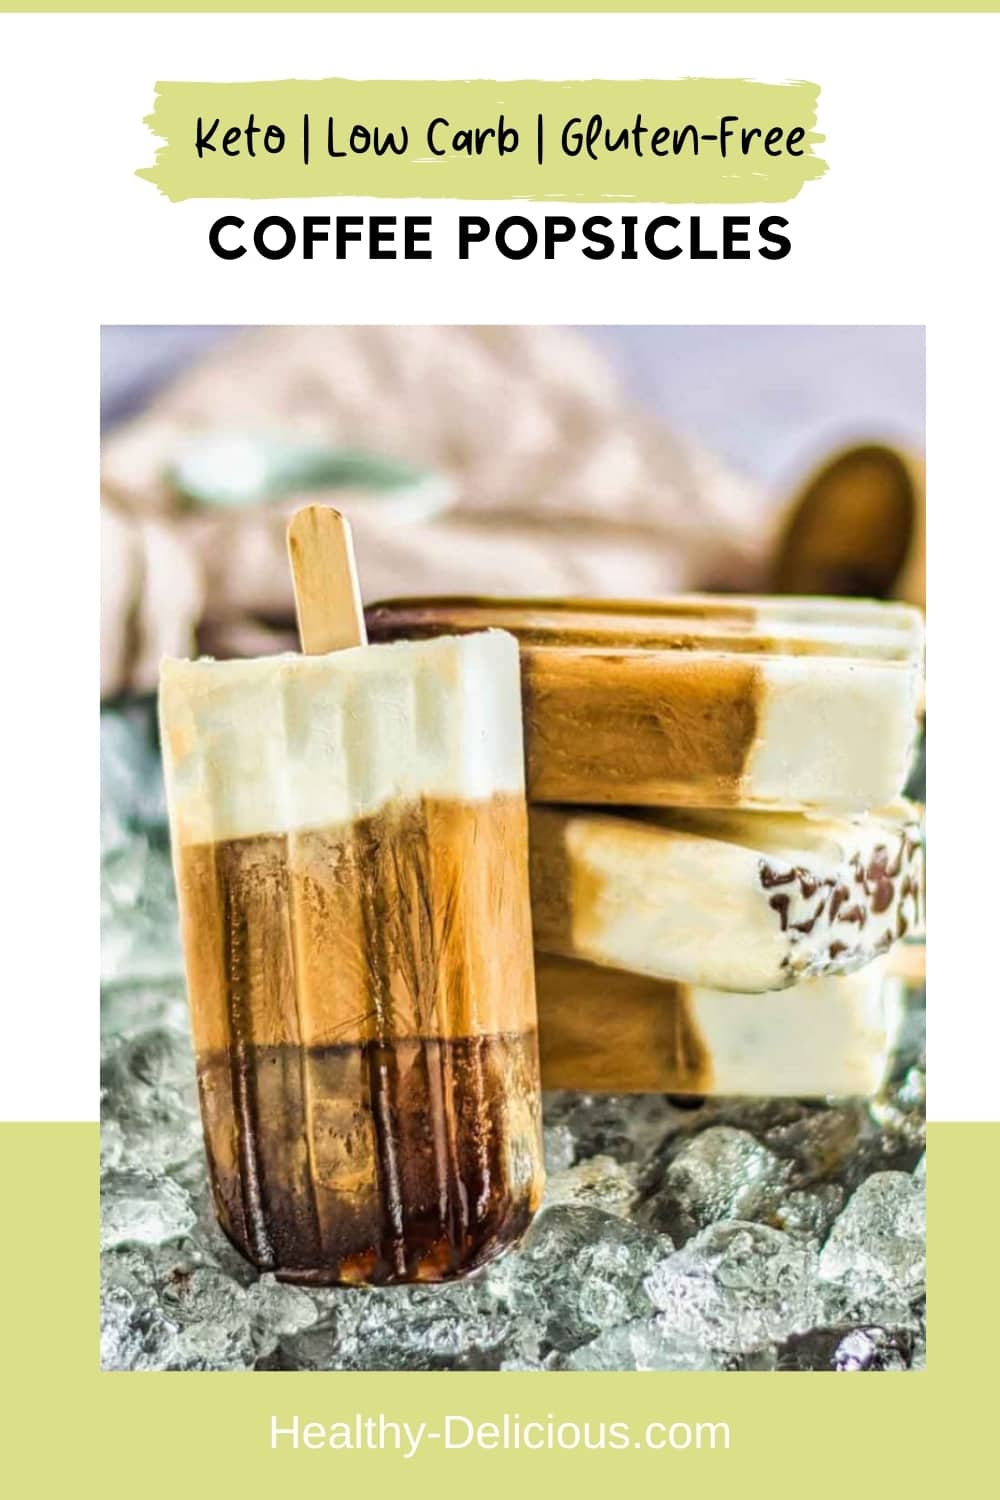 Triple-layer keto coffee popsicles are a cool and creamy summer treat that are perfect for a hot day! You'll love this quick, sugar-free pick-me-up. via @HealthyDelish